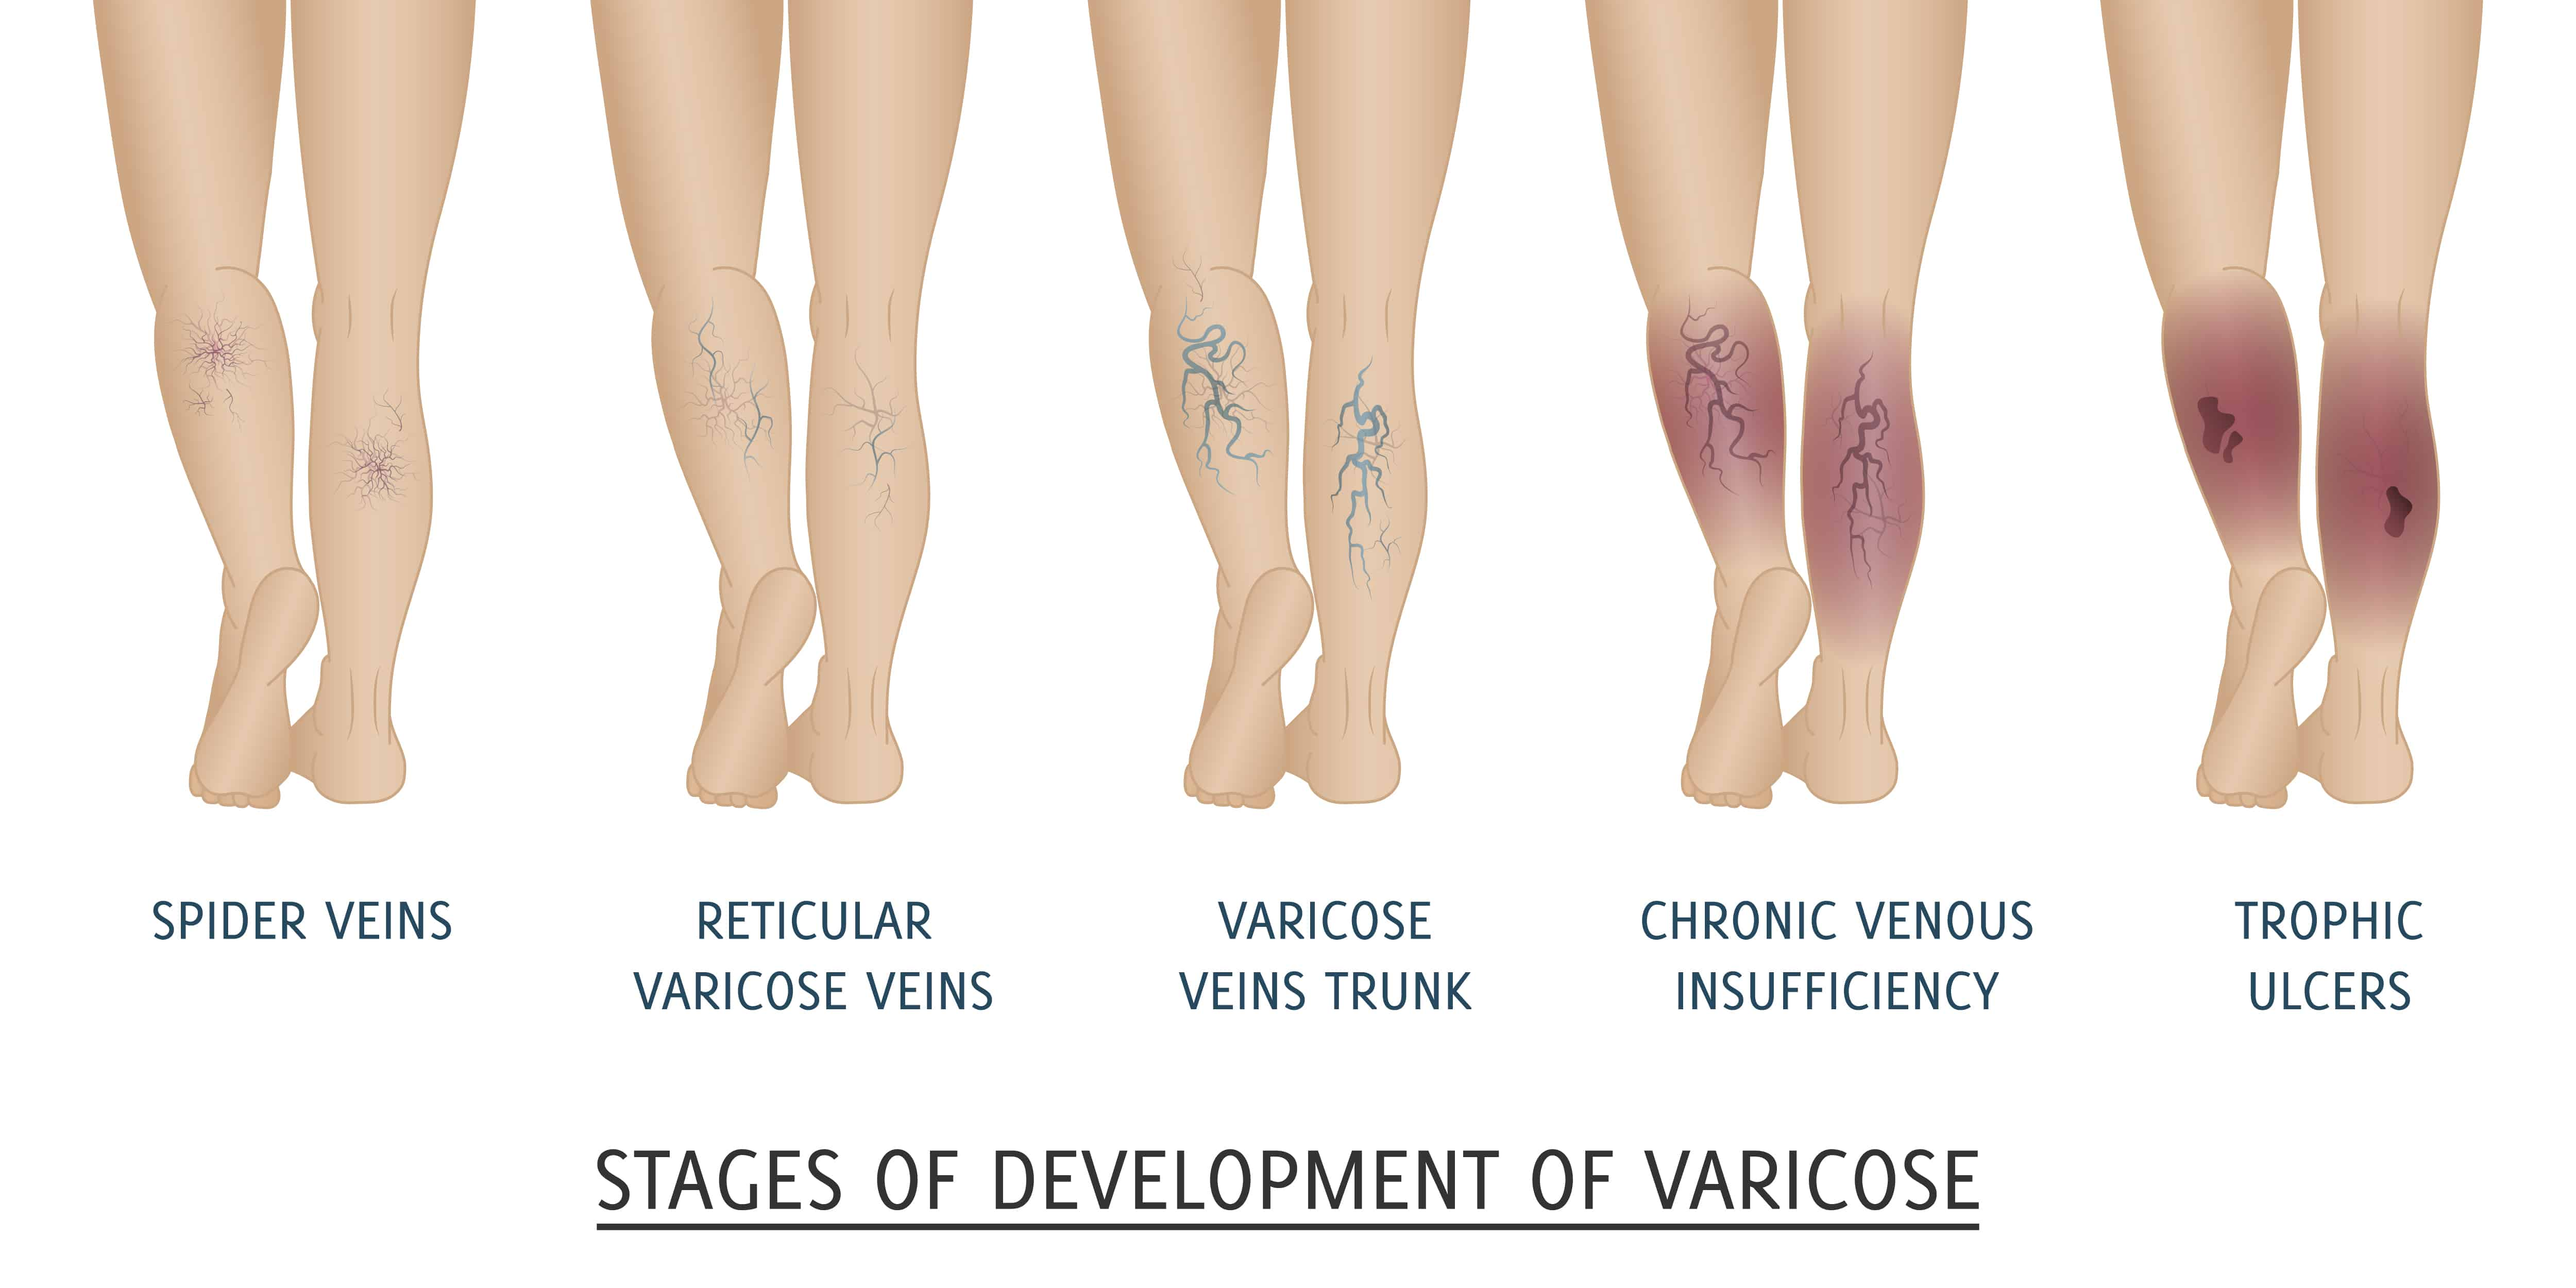 Best Essential Oils and Recipes For Varicose Veins Treatment Essential Oil Benefits